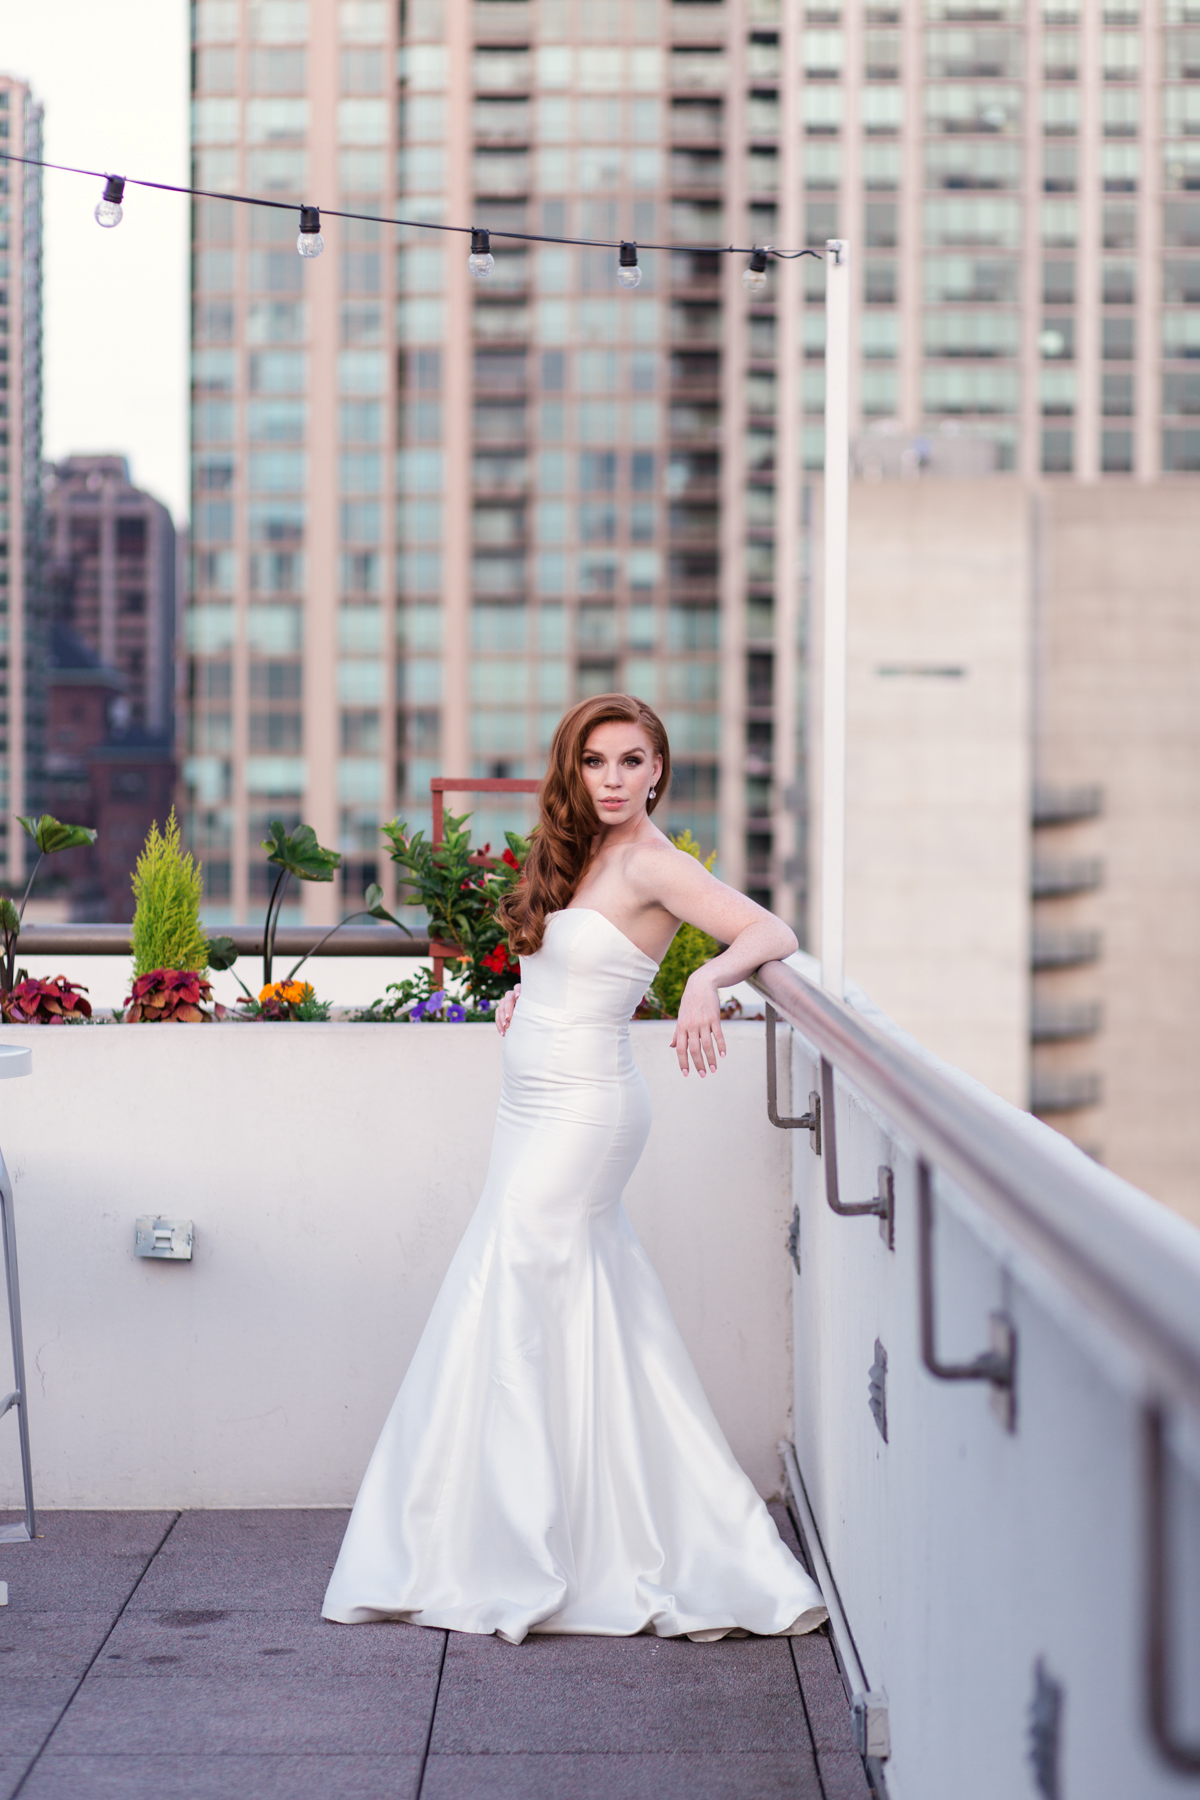 Rooftop-bridal-shoot-by-Emma-Mullins-Photography-35